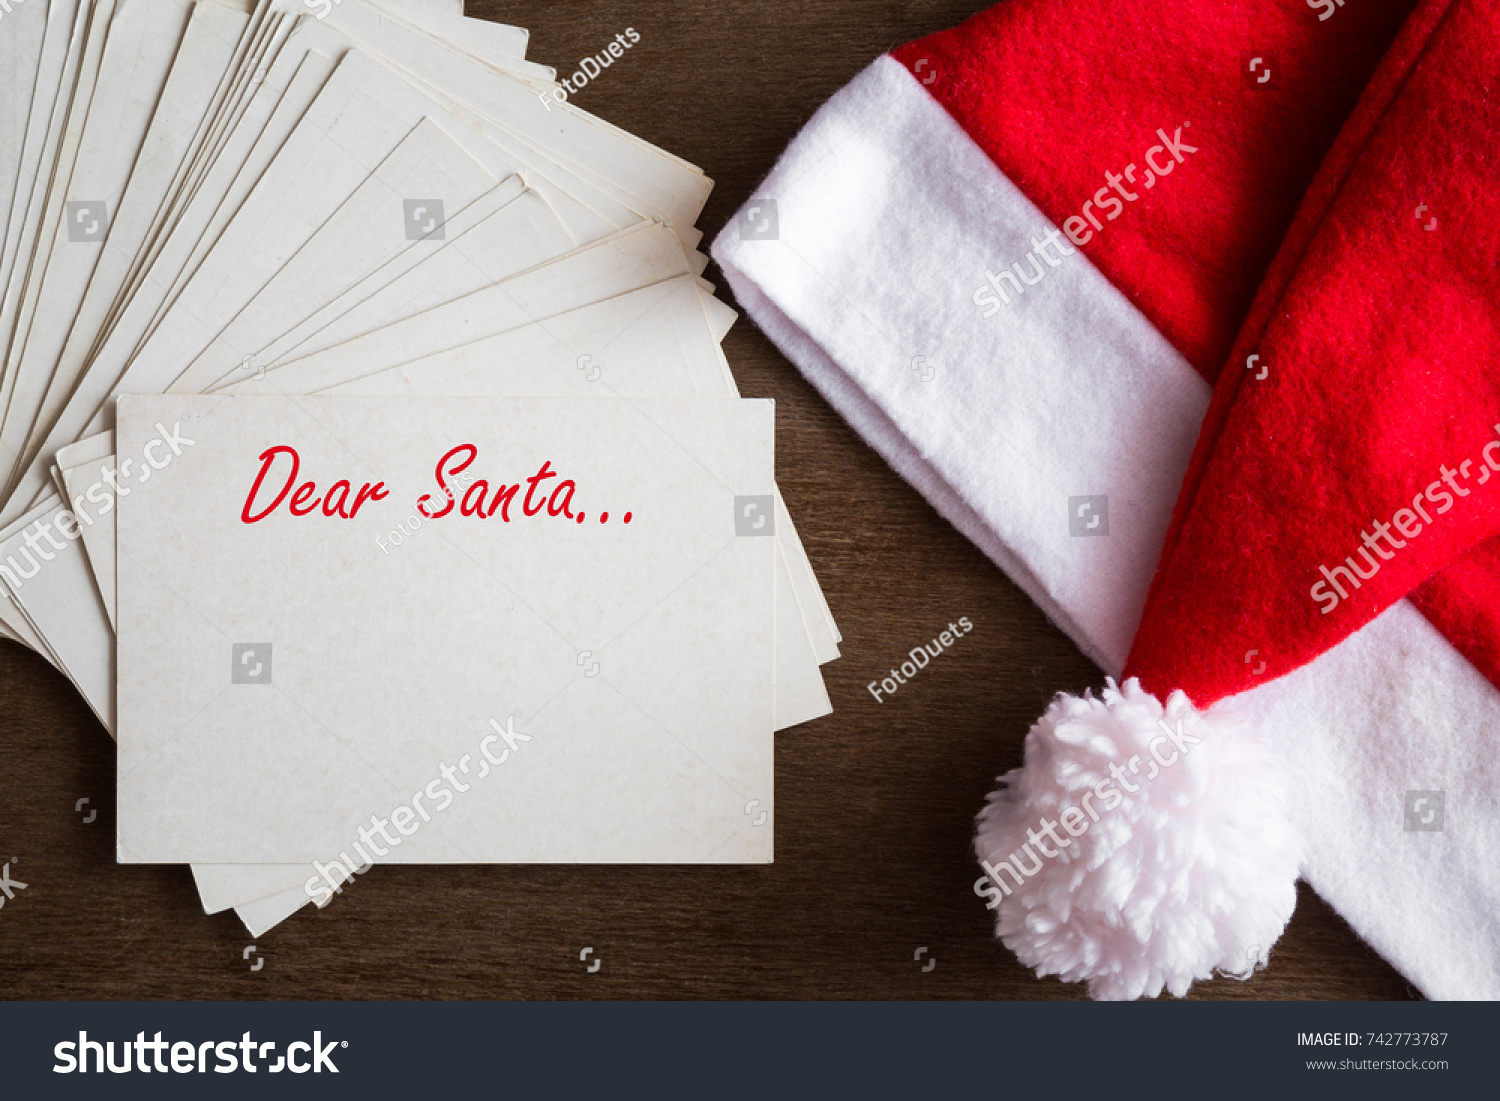 Letters santa claus children adults christmas stock photo letters to santa claus from children and adults christmas time concept empty place for spiritdancerdesigns Image collections